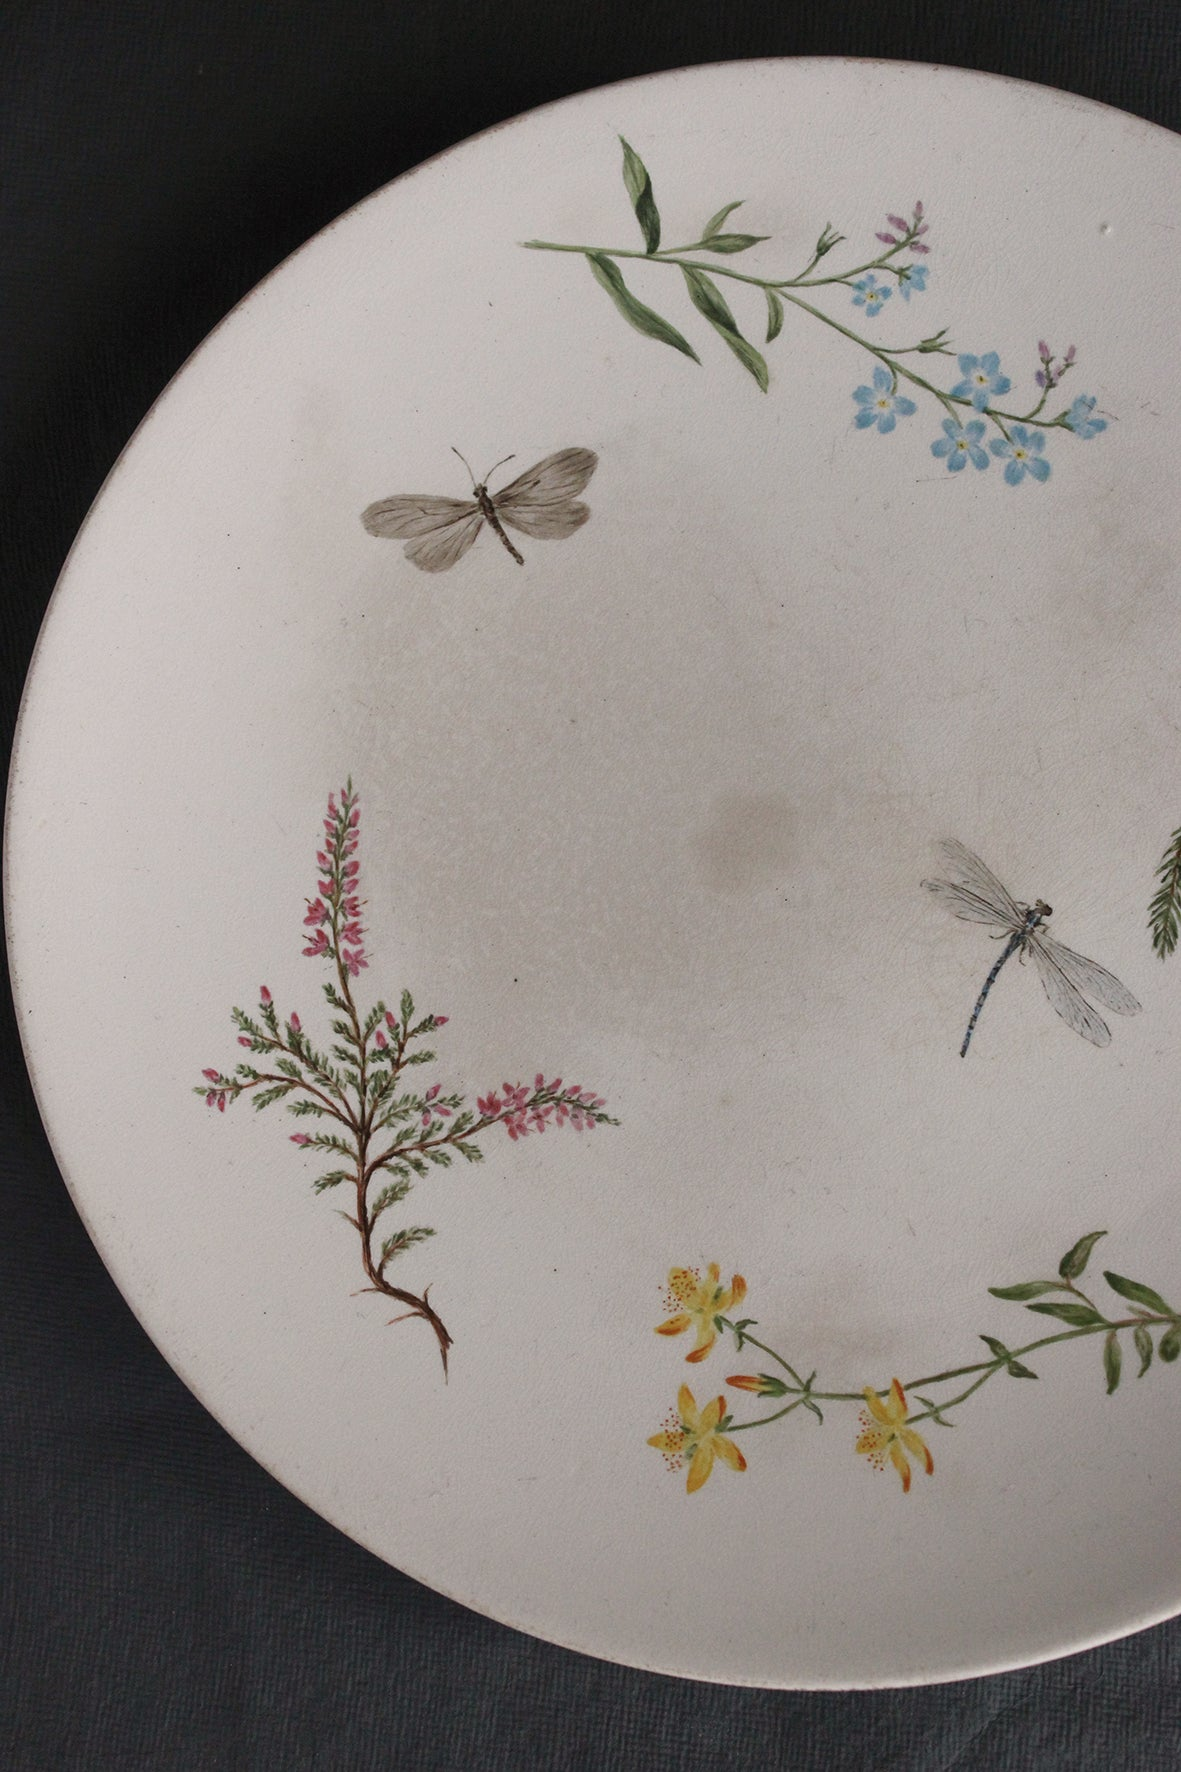 Wildflowers, Dragonfly & Butterfly - Antique Plate